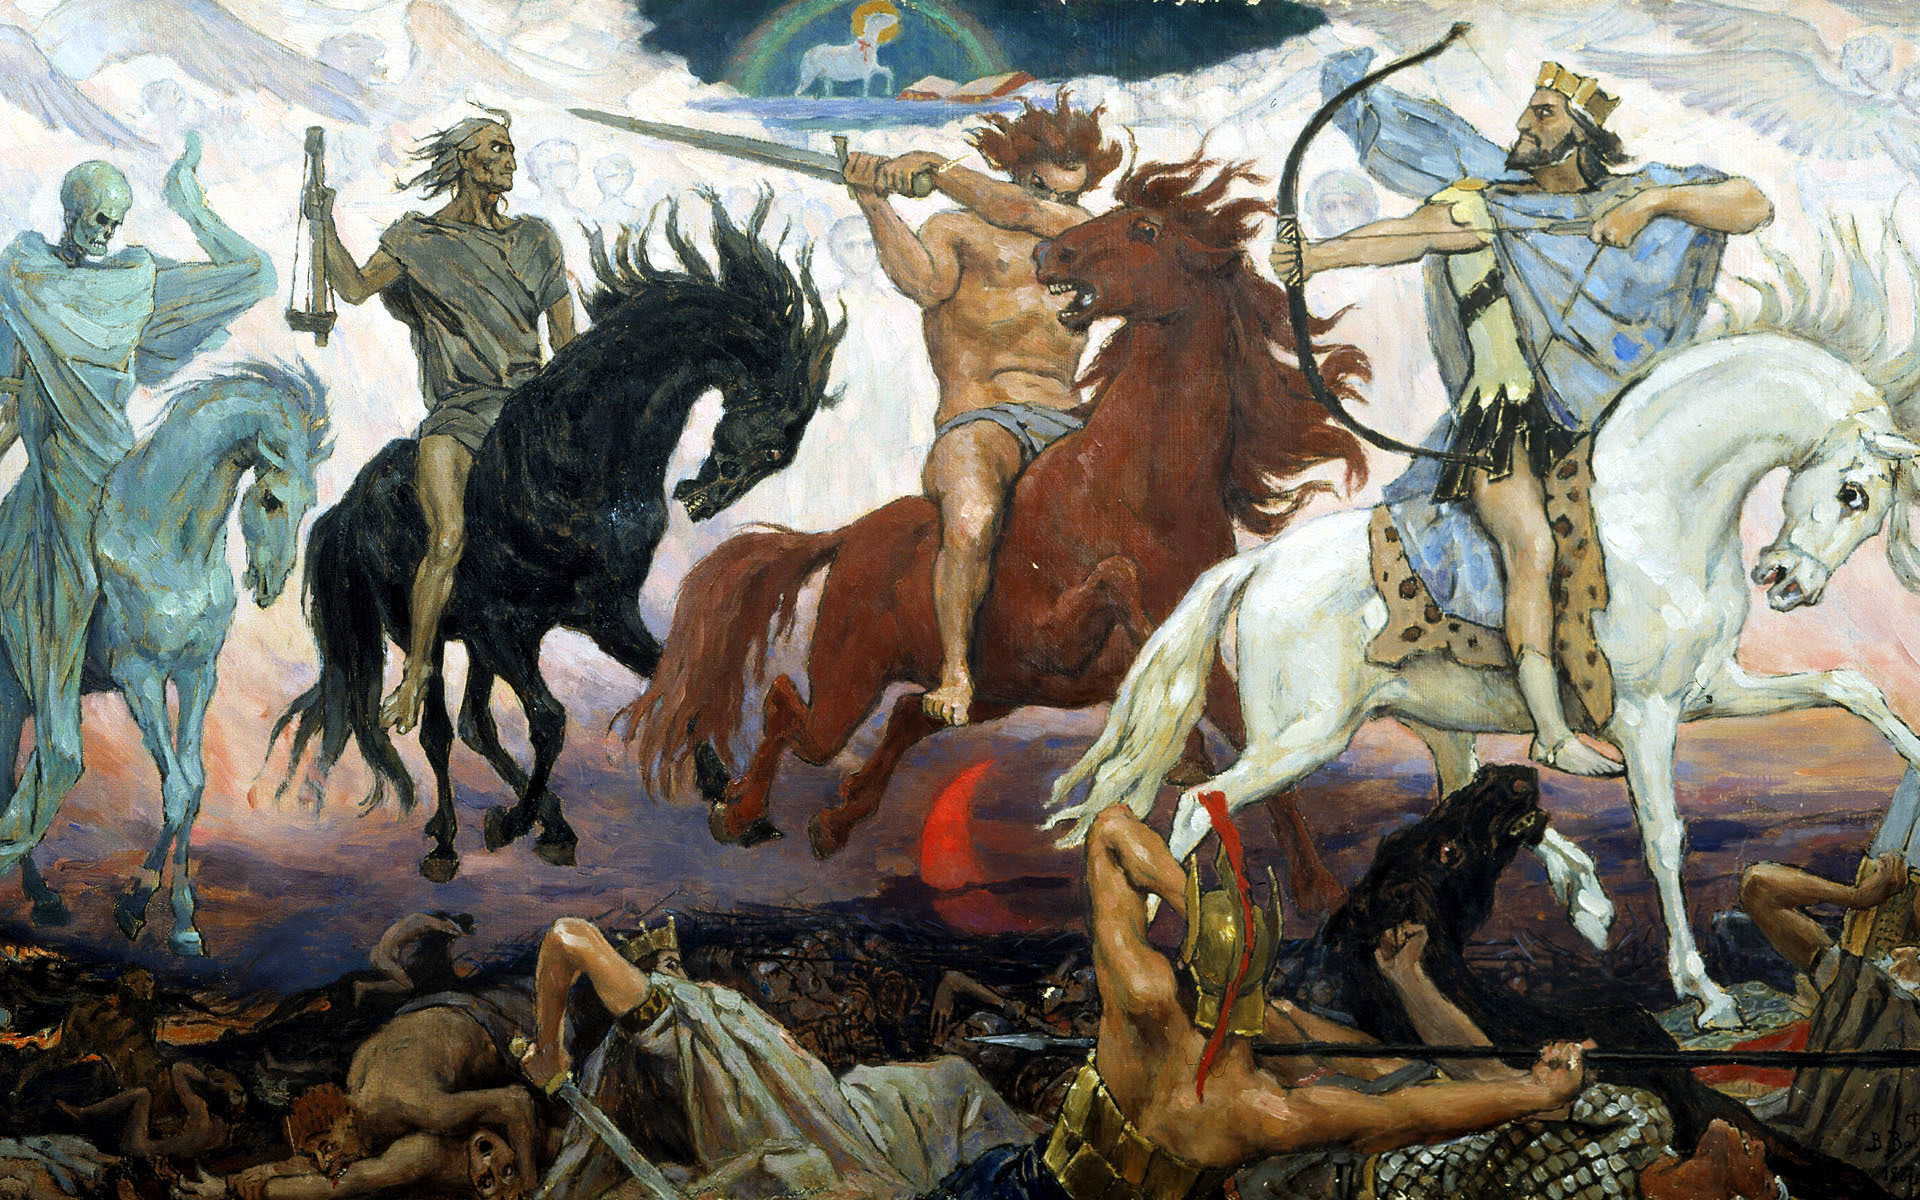 paintings Apocalypse Horses Viktor HD Wallpaper